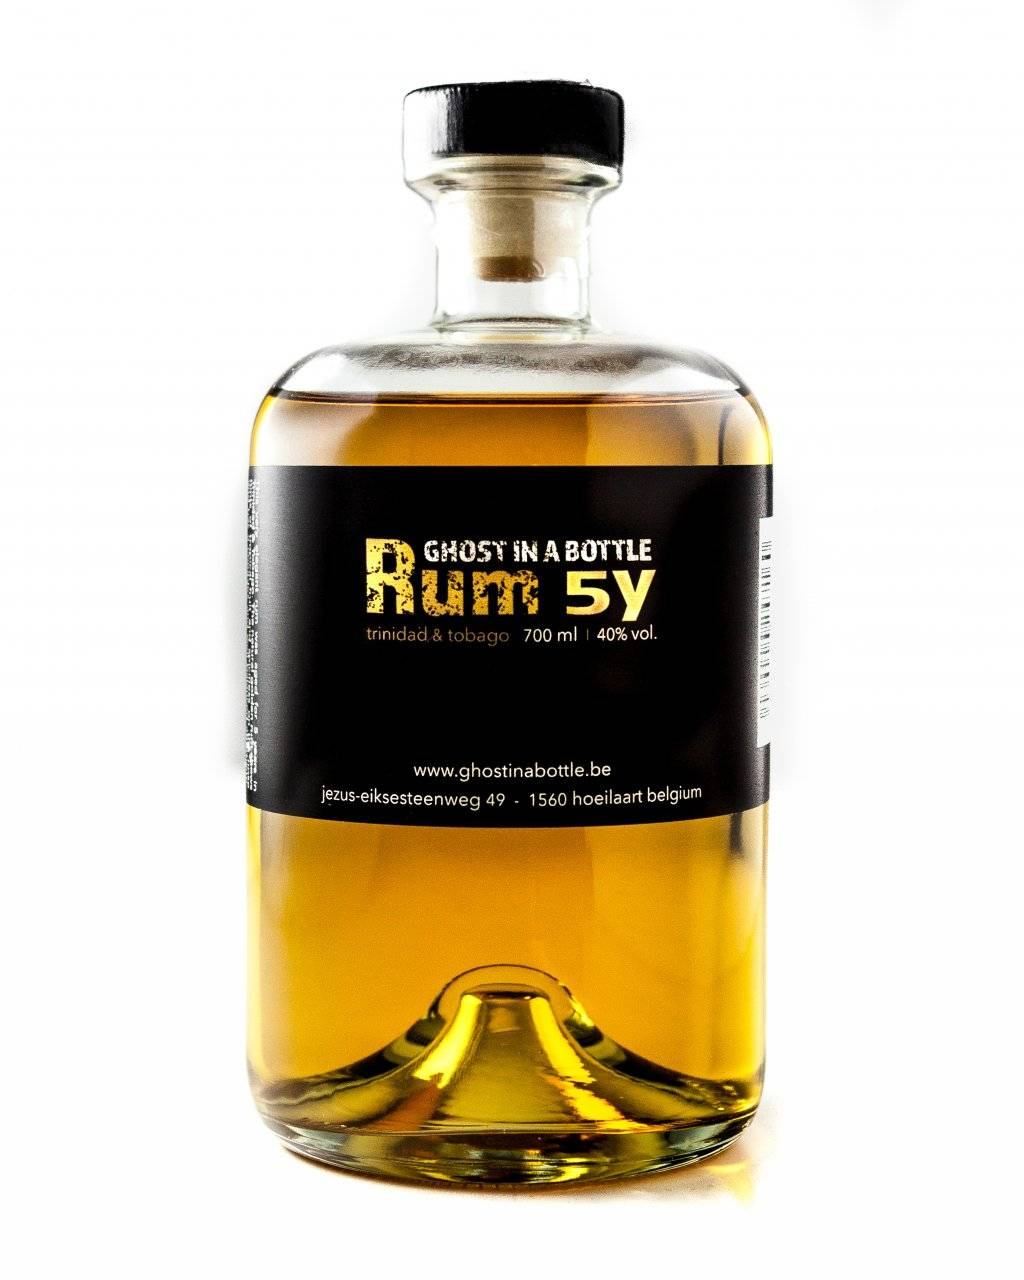 Ghost in a bottle rum 5Y